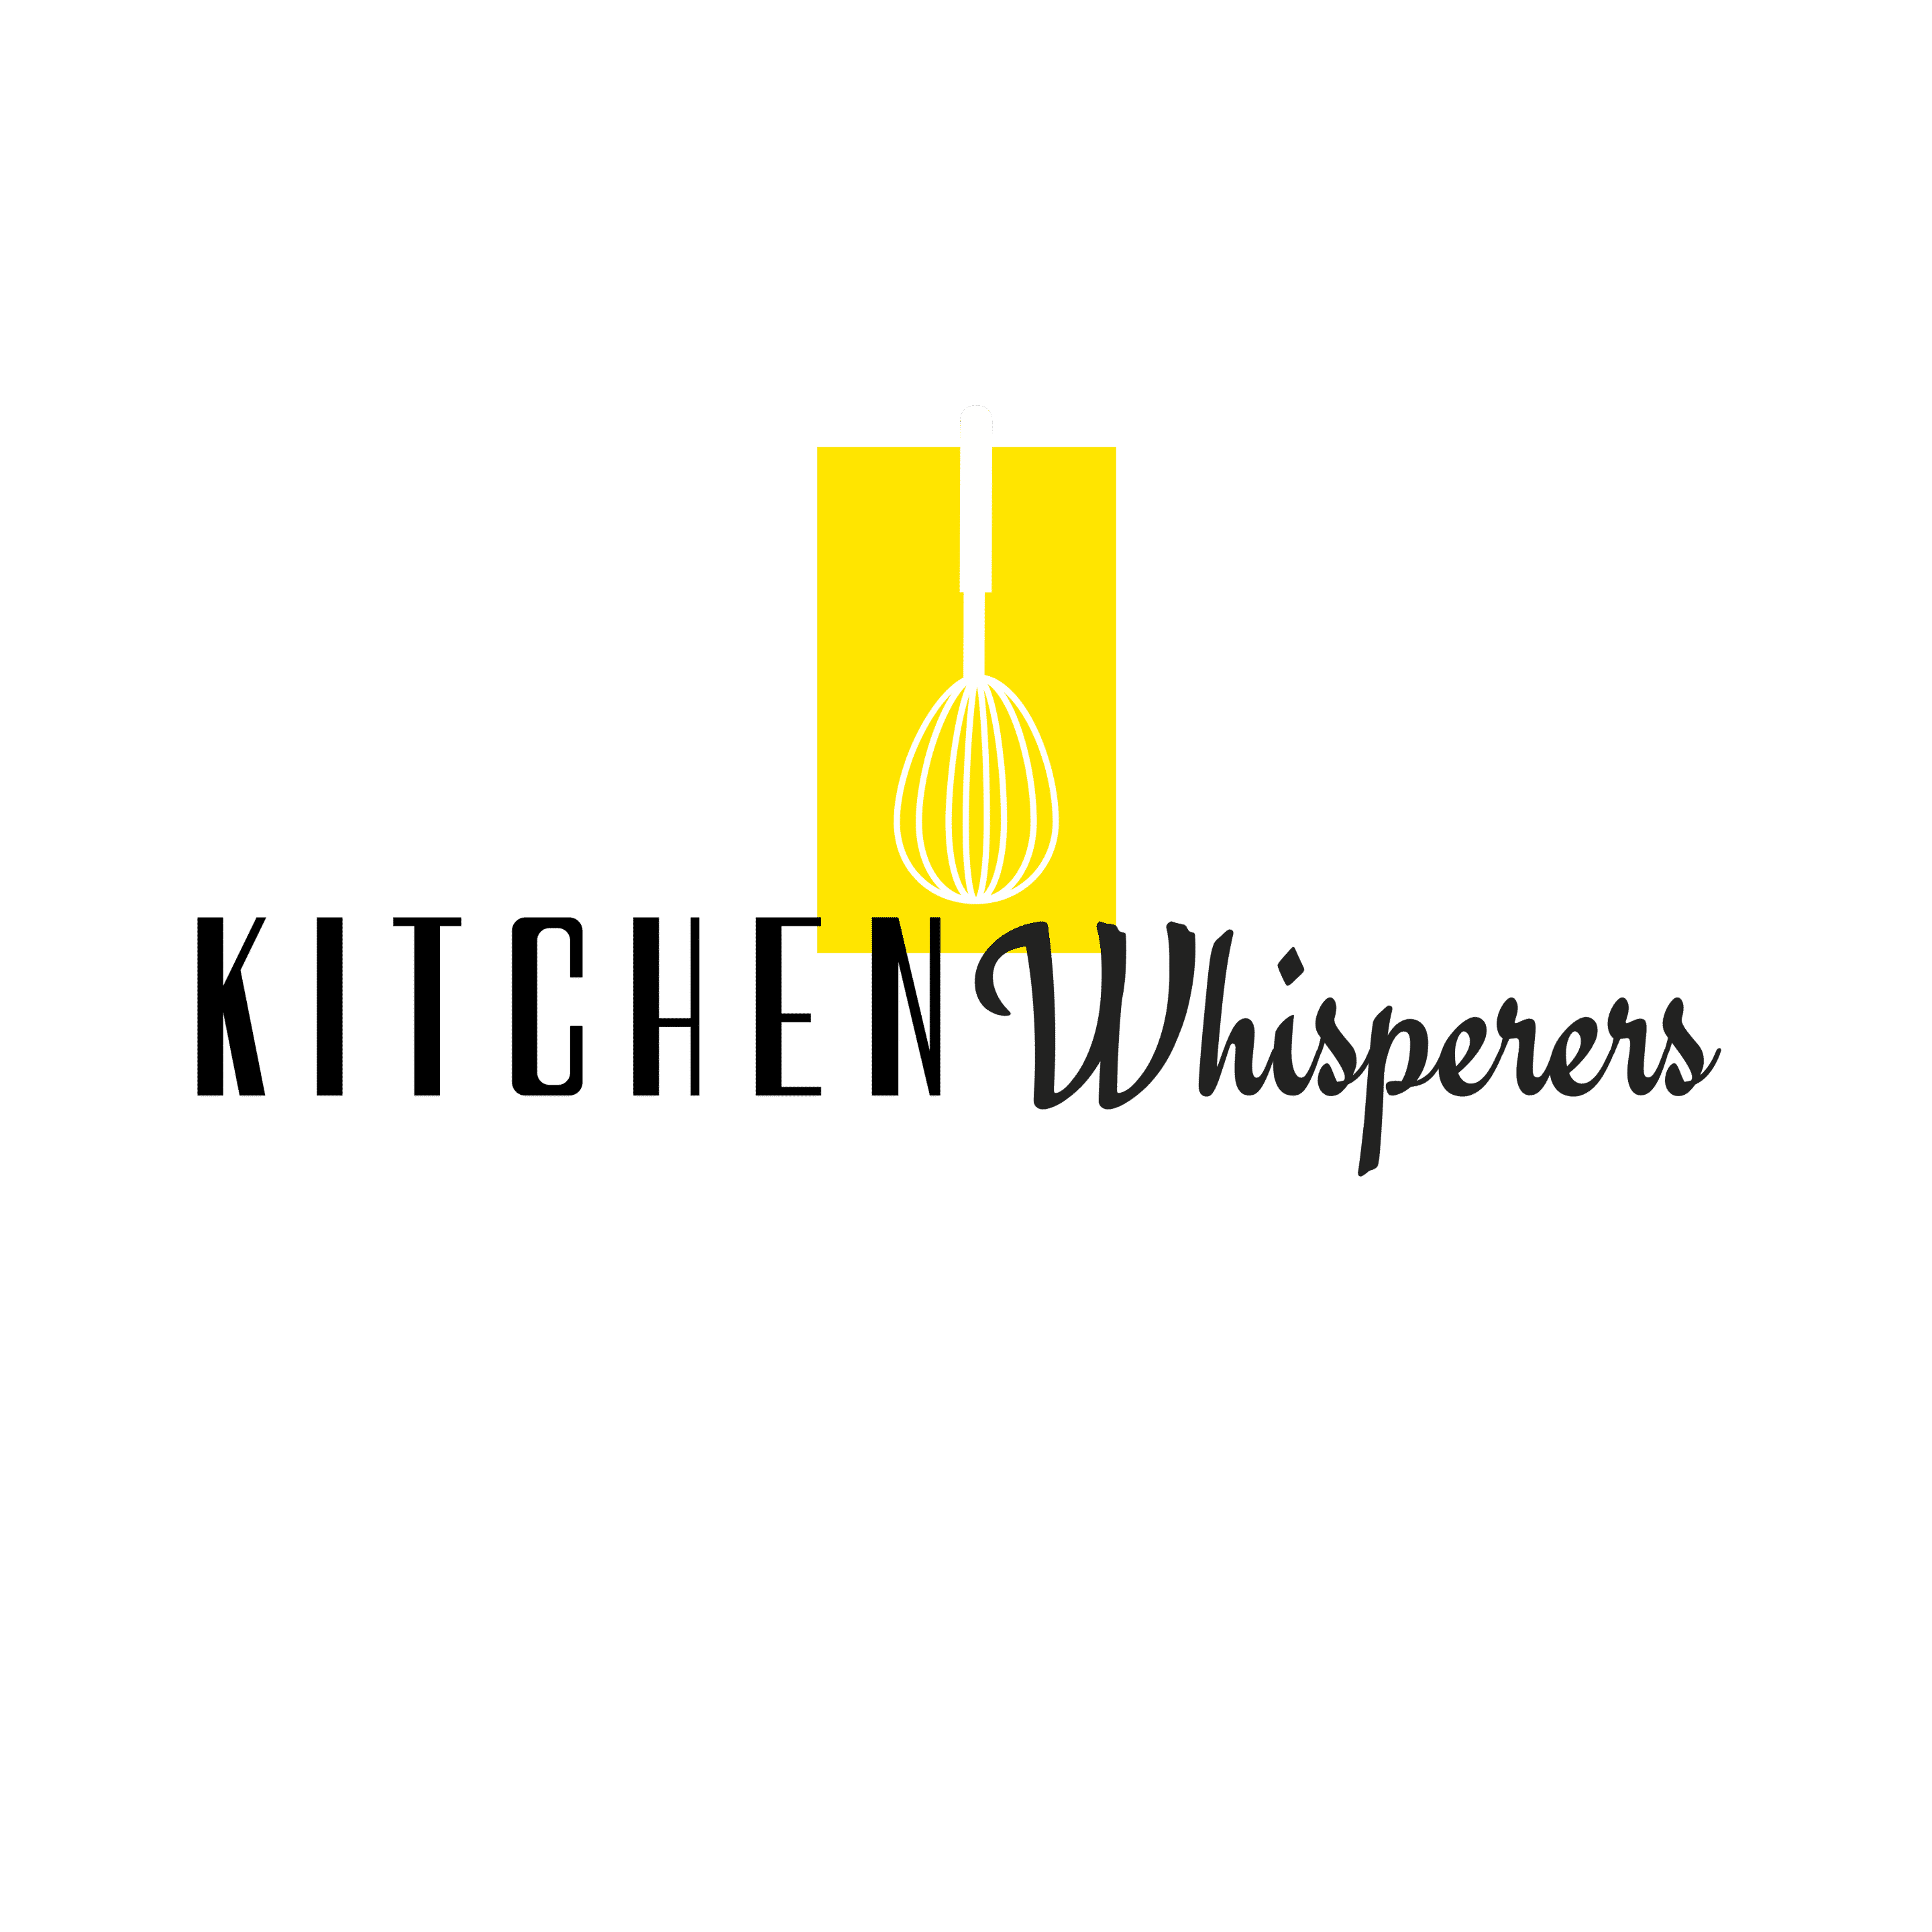 Kitchen Whisperers - Kitchen gadgets, recipes, & more